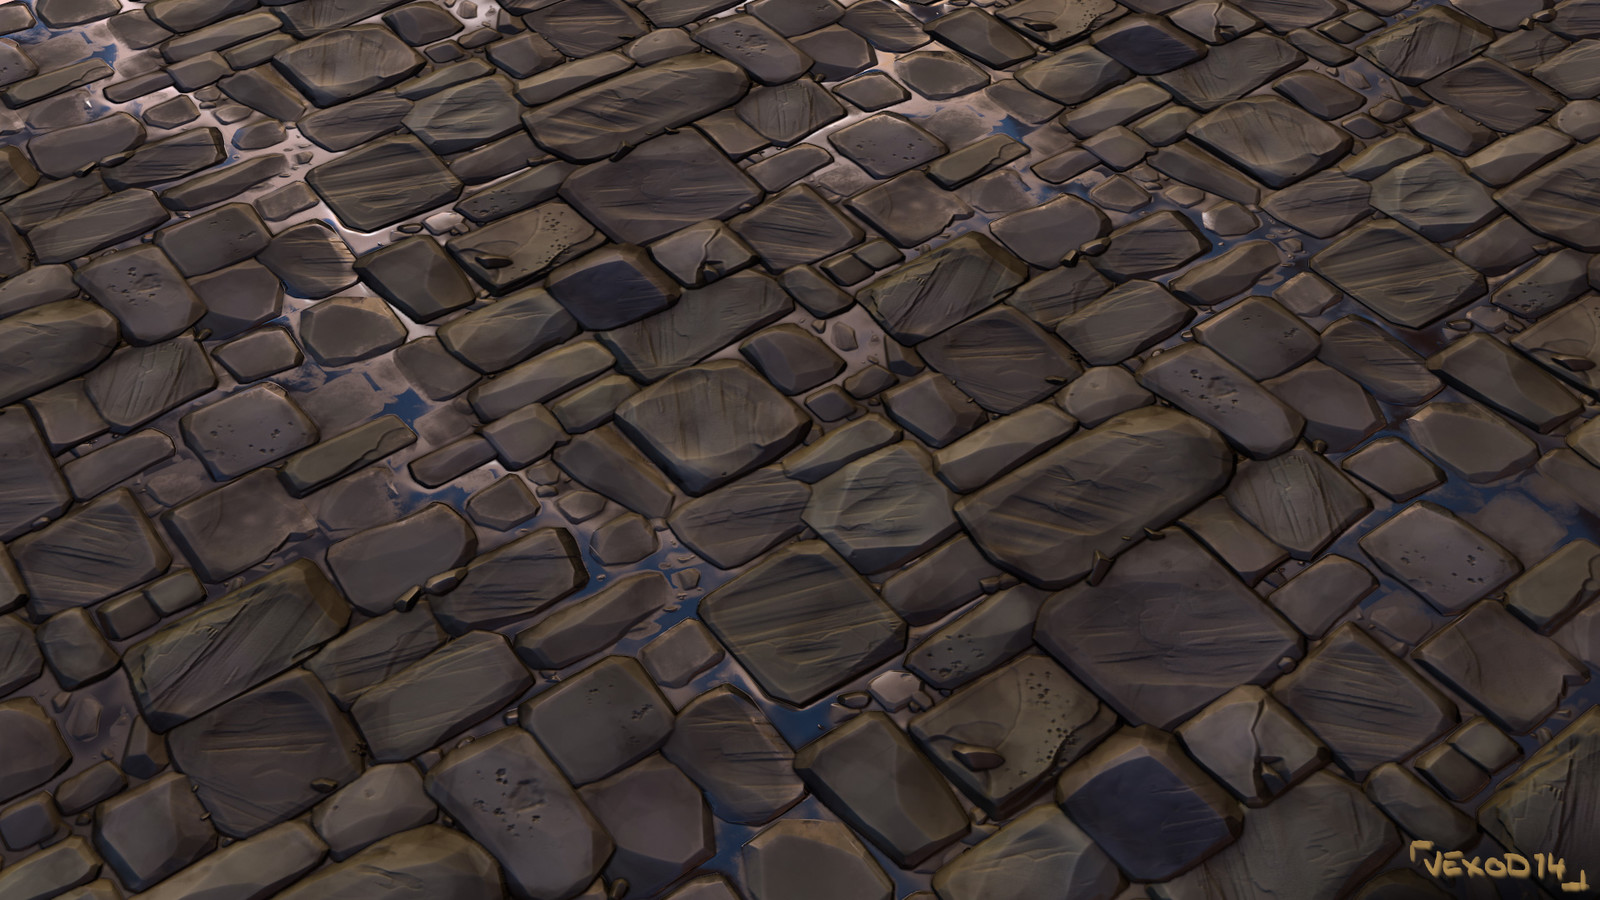 Tileable texture of pavements